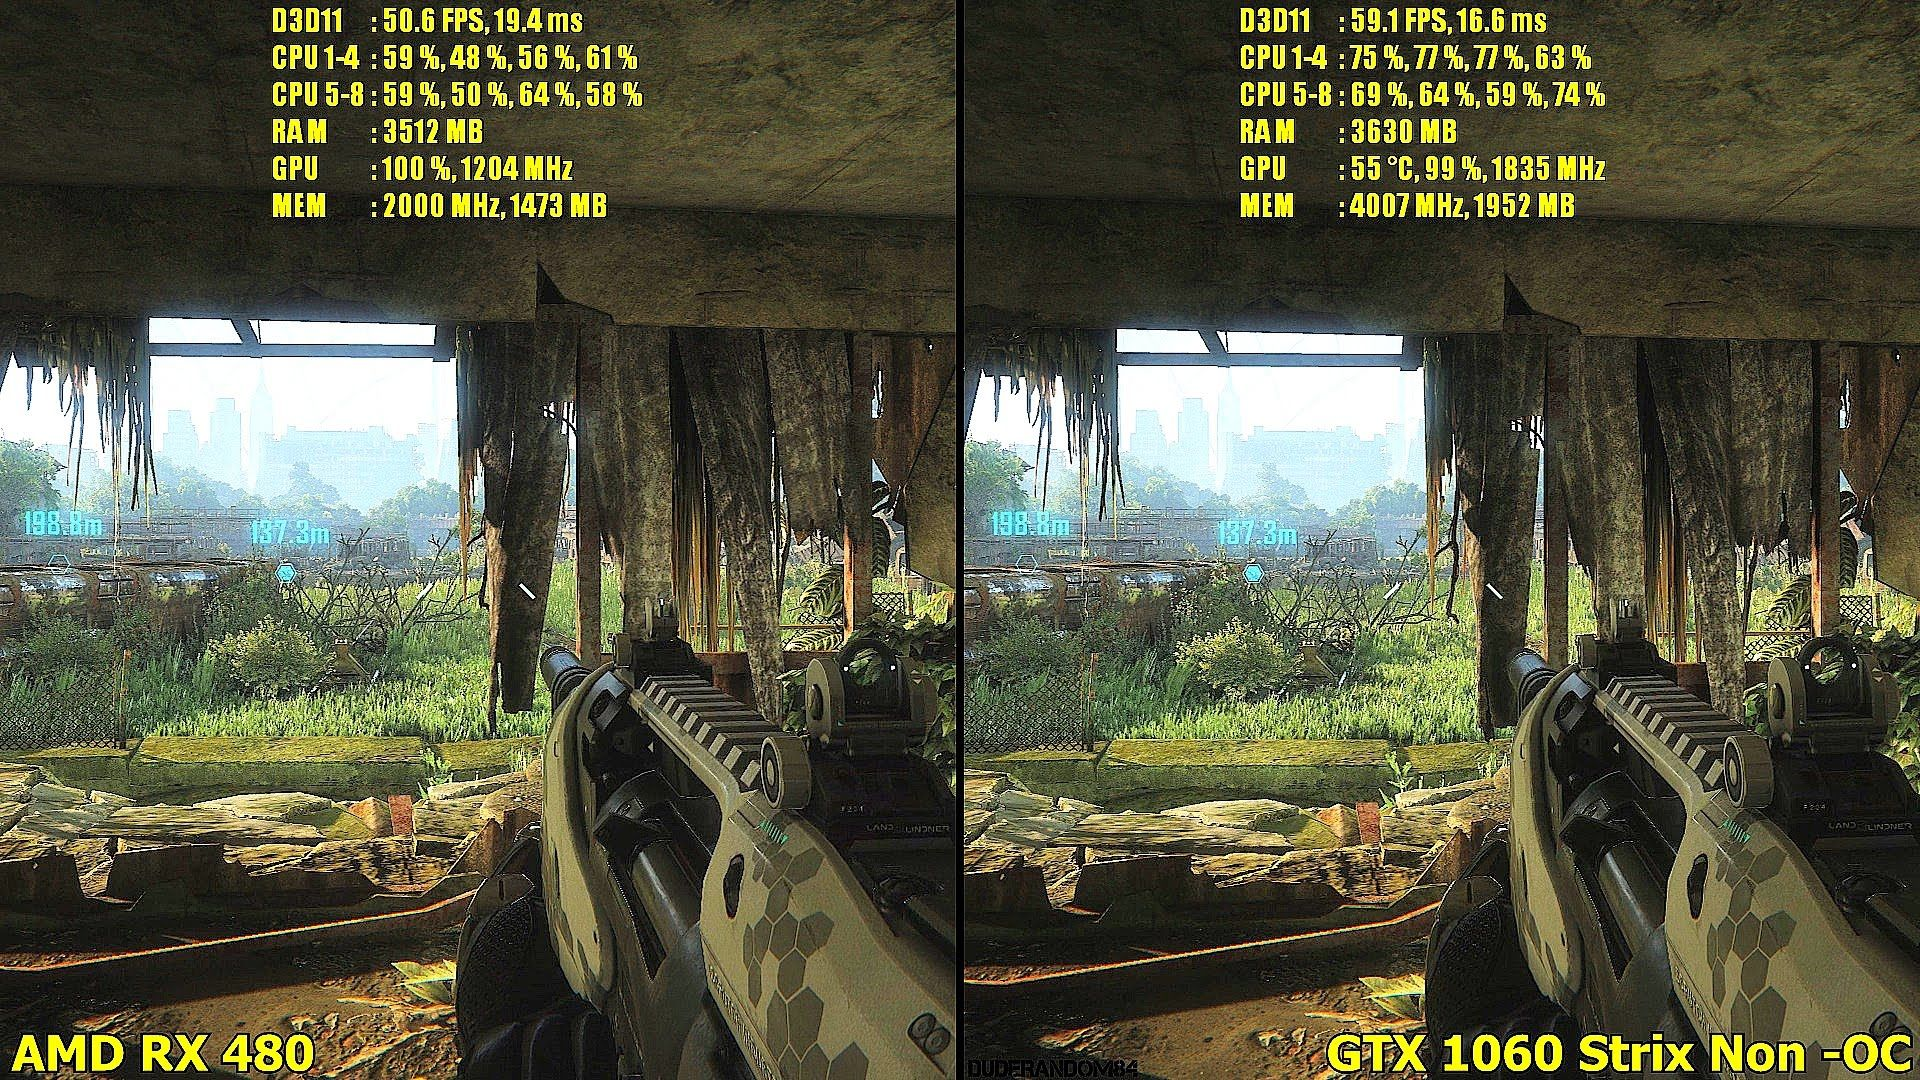 GTX 1060 Vs AMD RX 480 Crysis 3 Frame Rate Comparison 1080p | pc ...